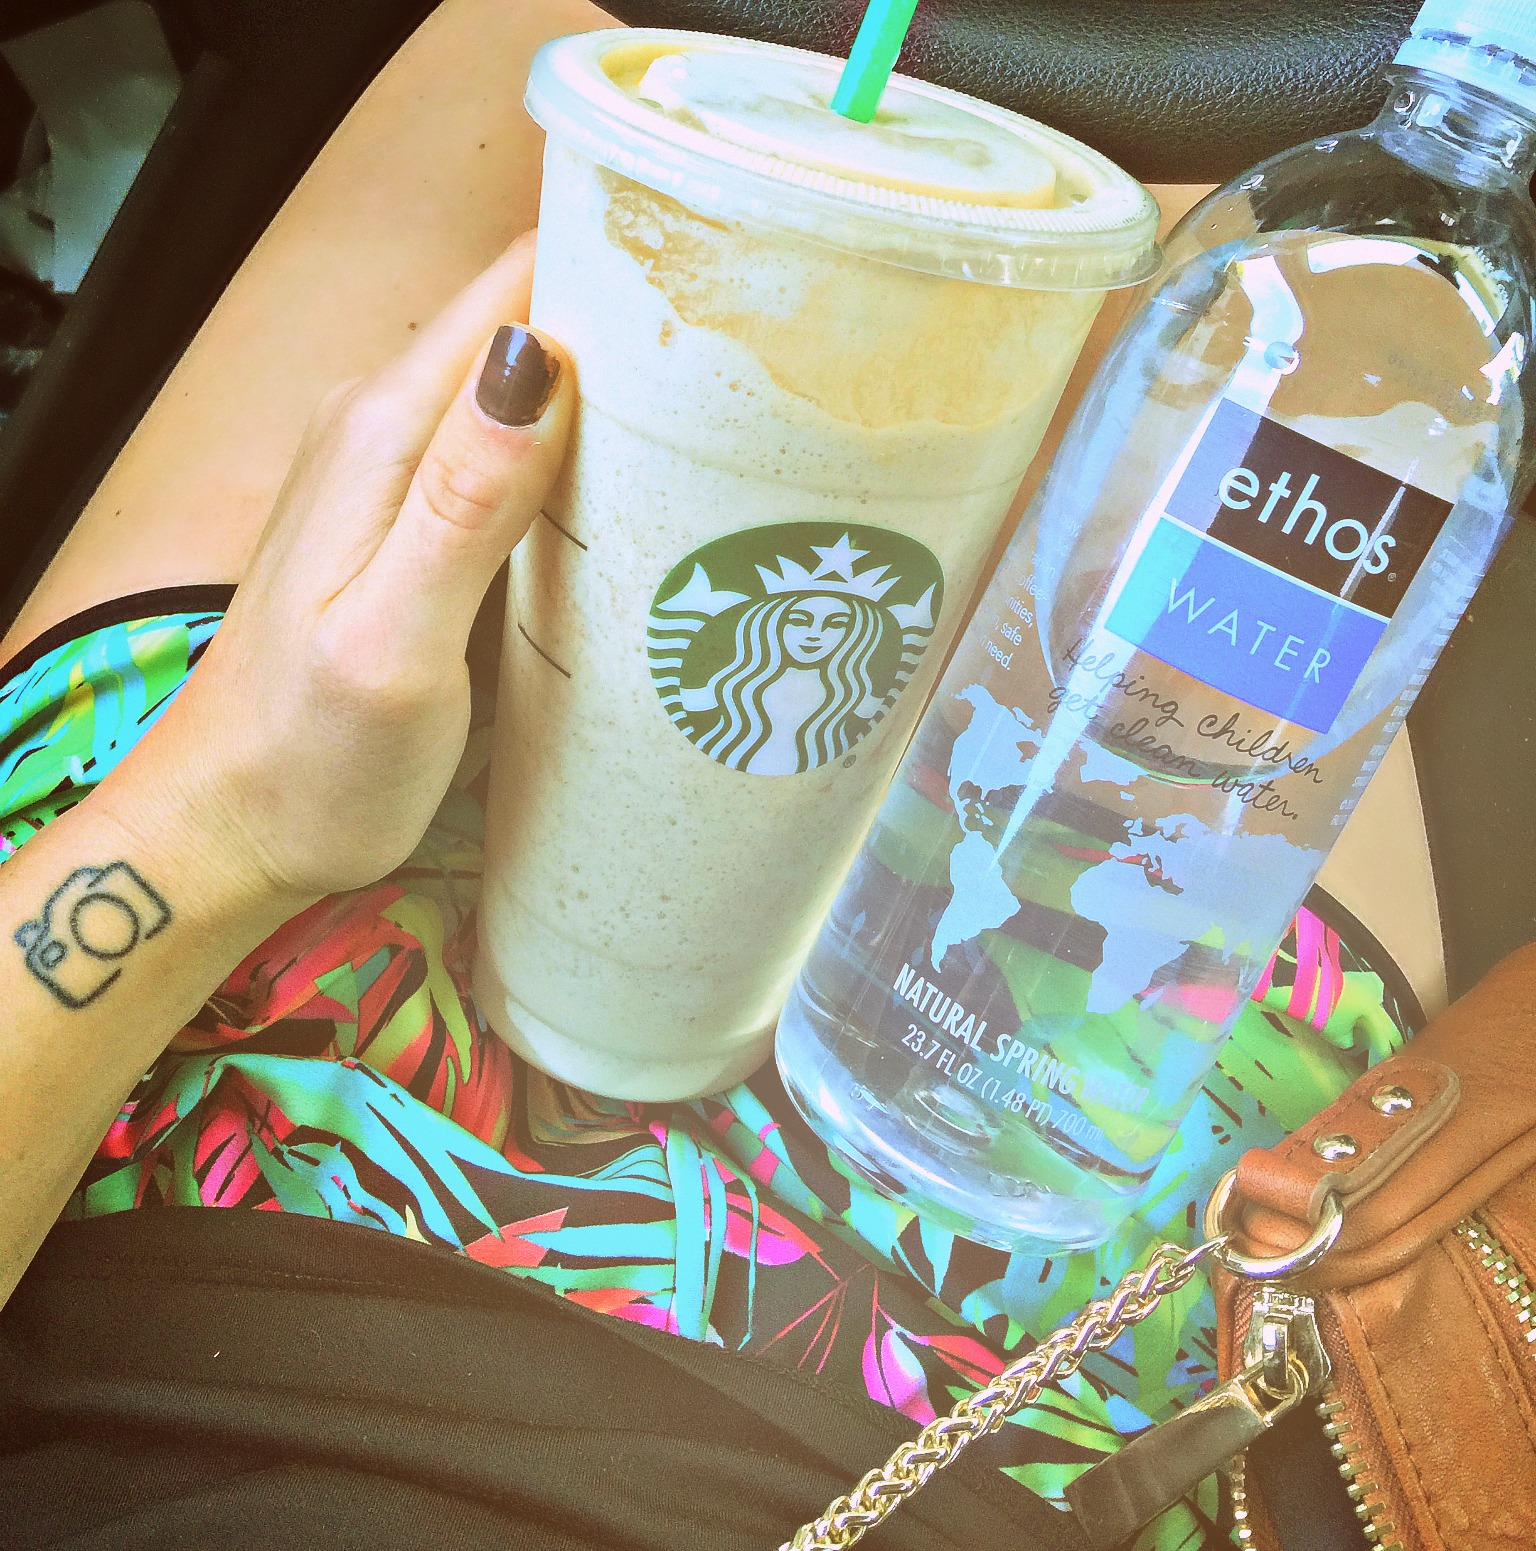 80 calorie venti drink from starbucks